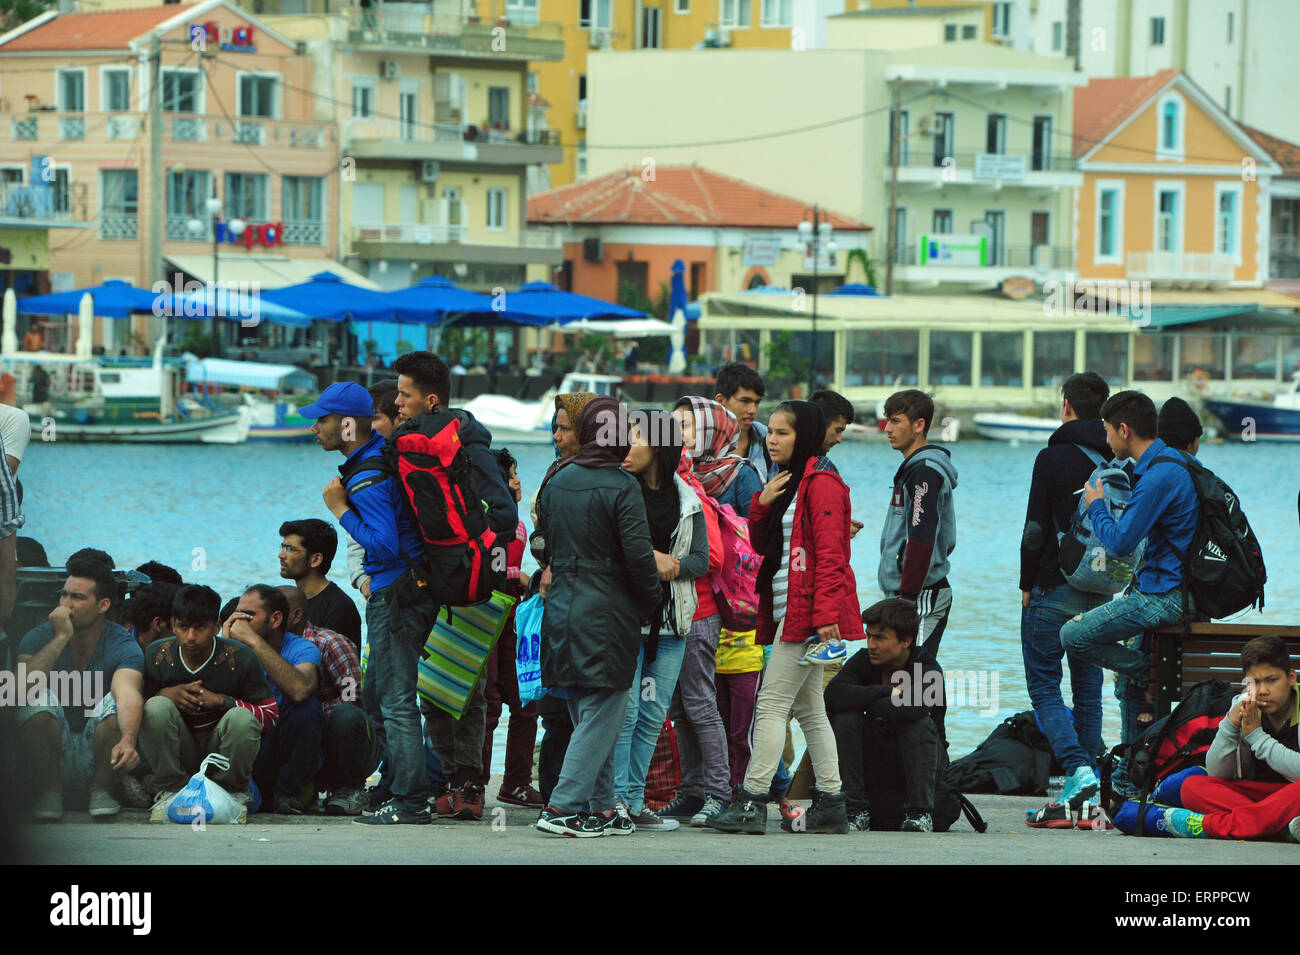 Refugees from Syria in the port of Mytilini, Lesvos, Greece. - Stock Image